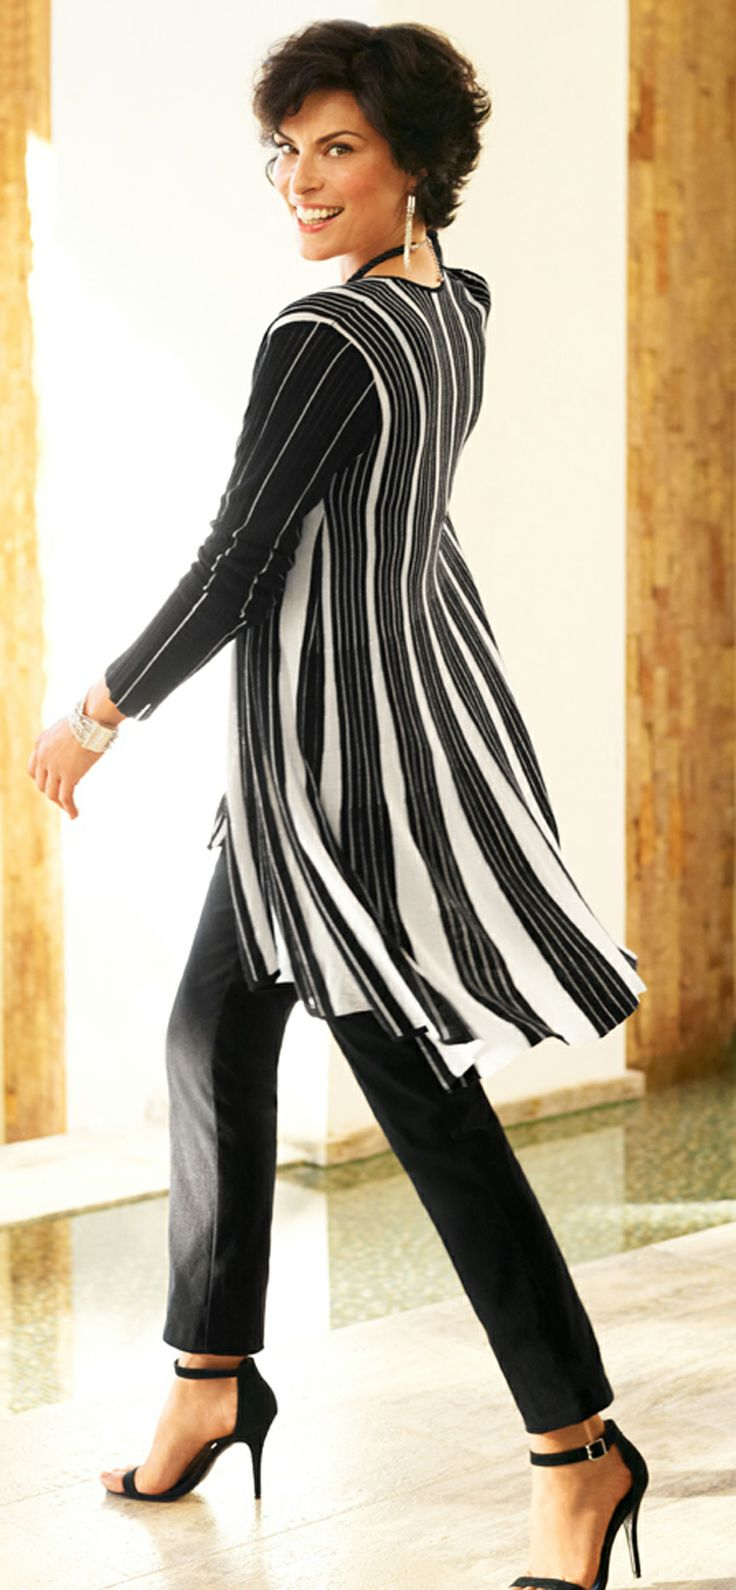 Drama Stripe Ann Cardigan #DestinationFabulous #travel #SoSlimming #spring #chicos